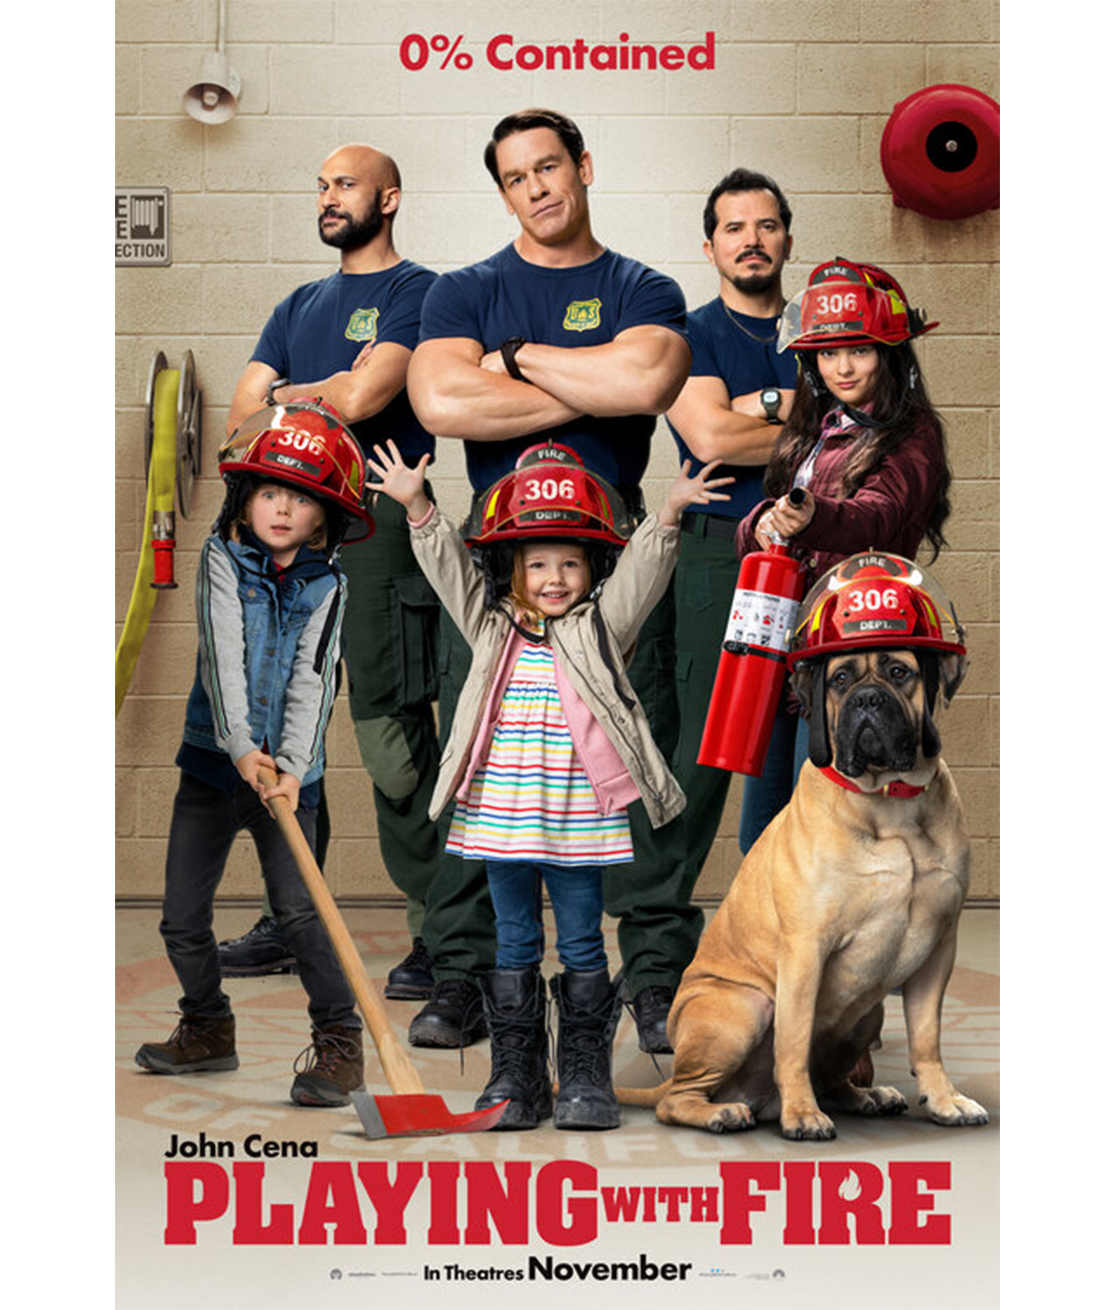 New original movie poster for John Cena's Playing With